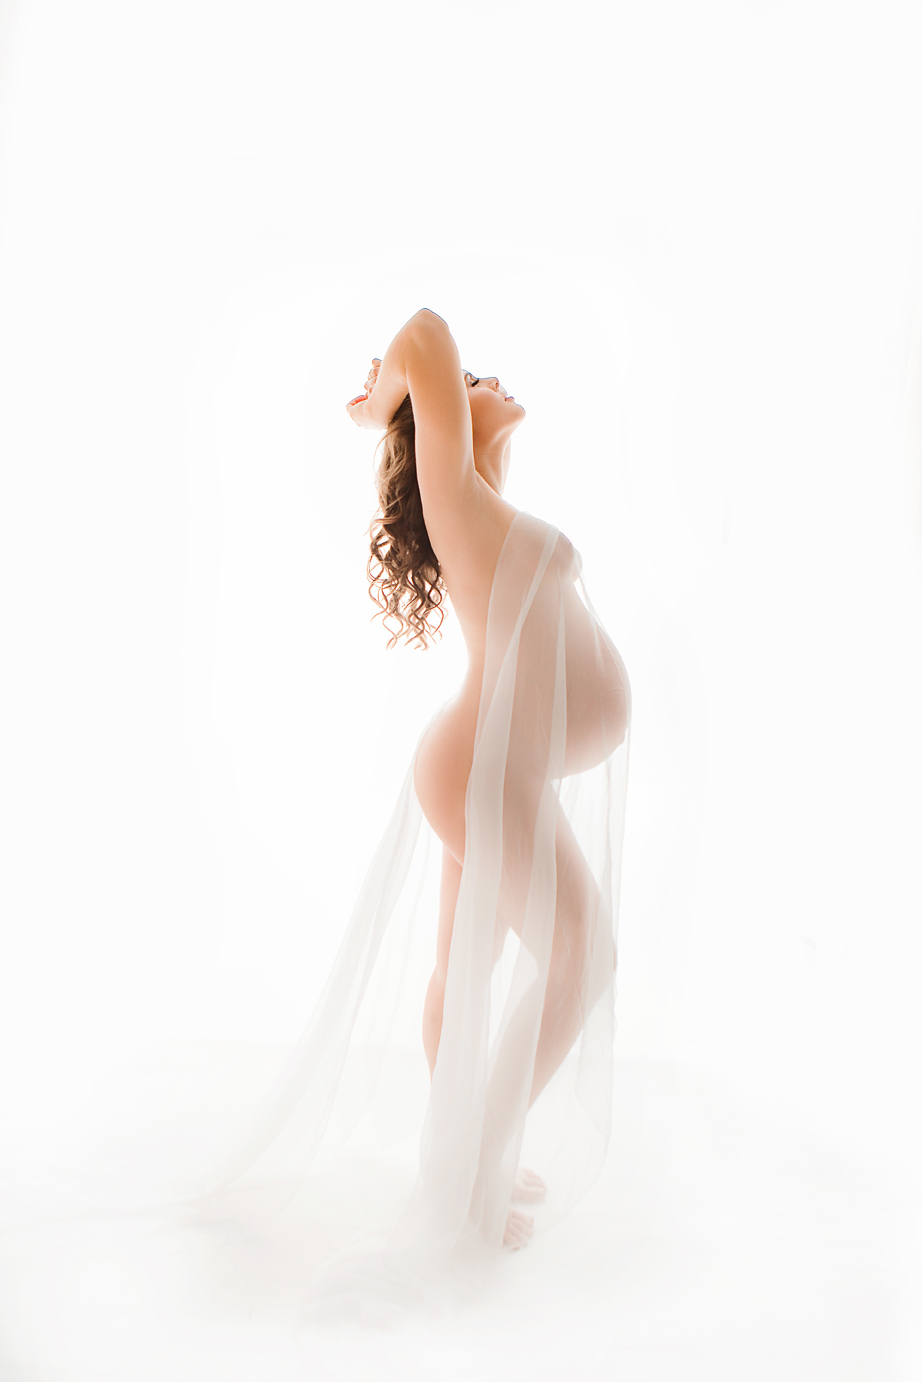 orange-county-maternity-photography-studio-irvine-nude-fine-art-white-backdrop.jpg